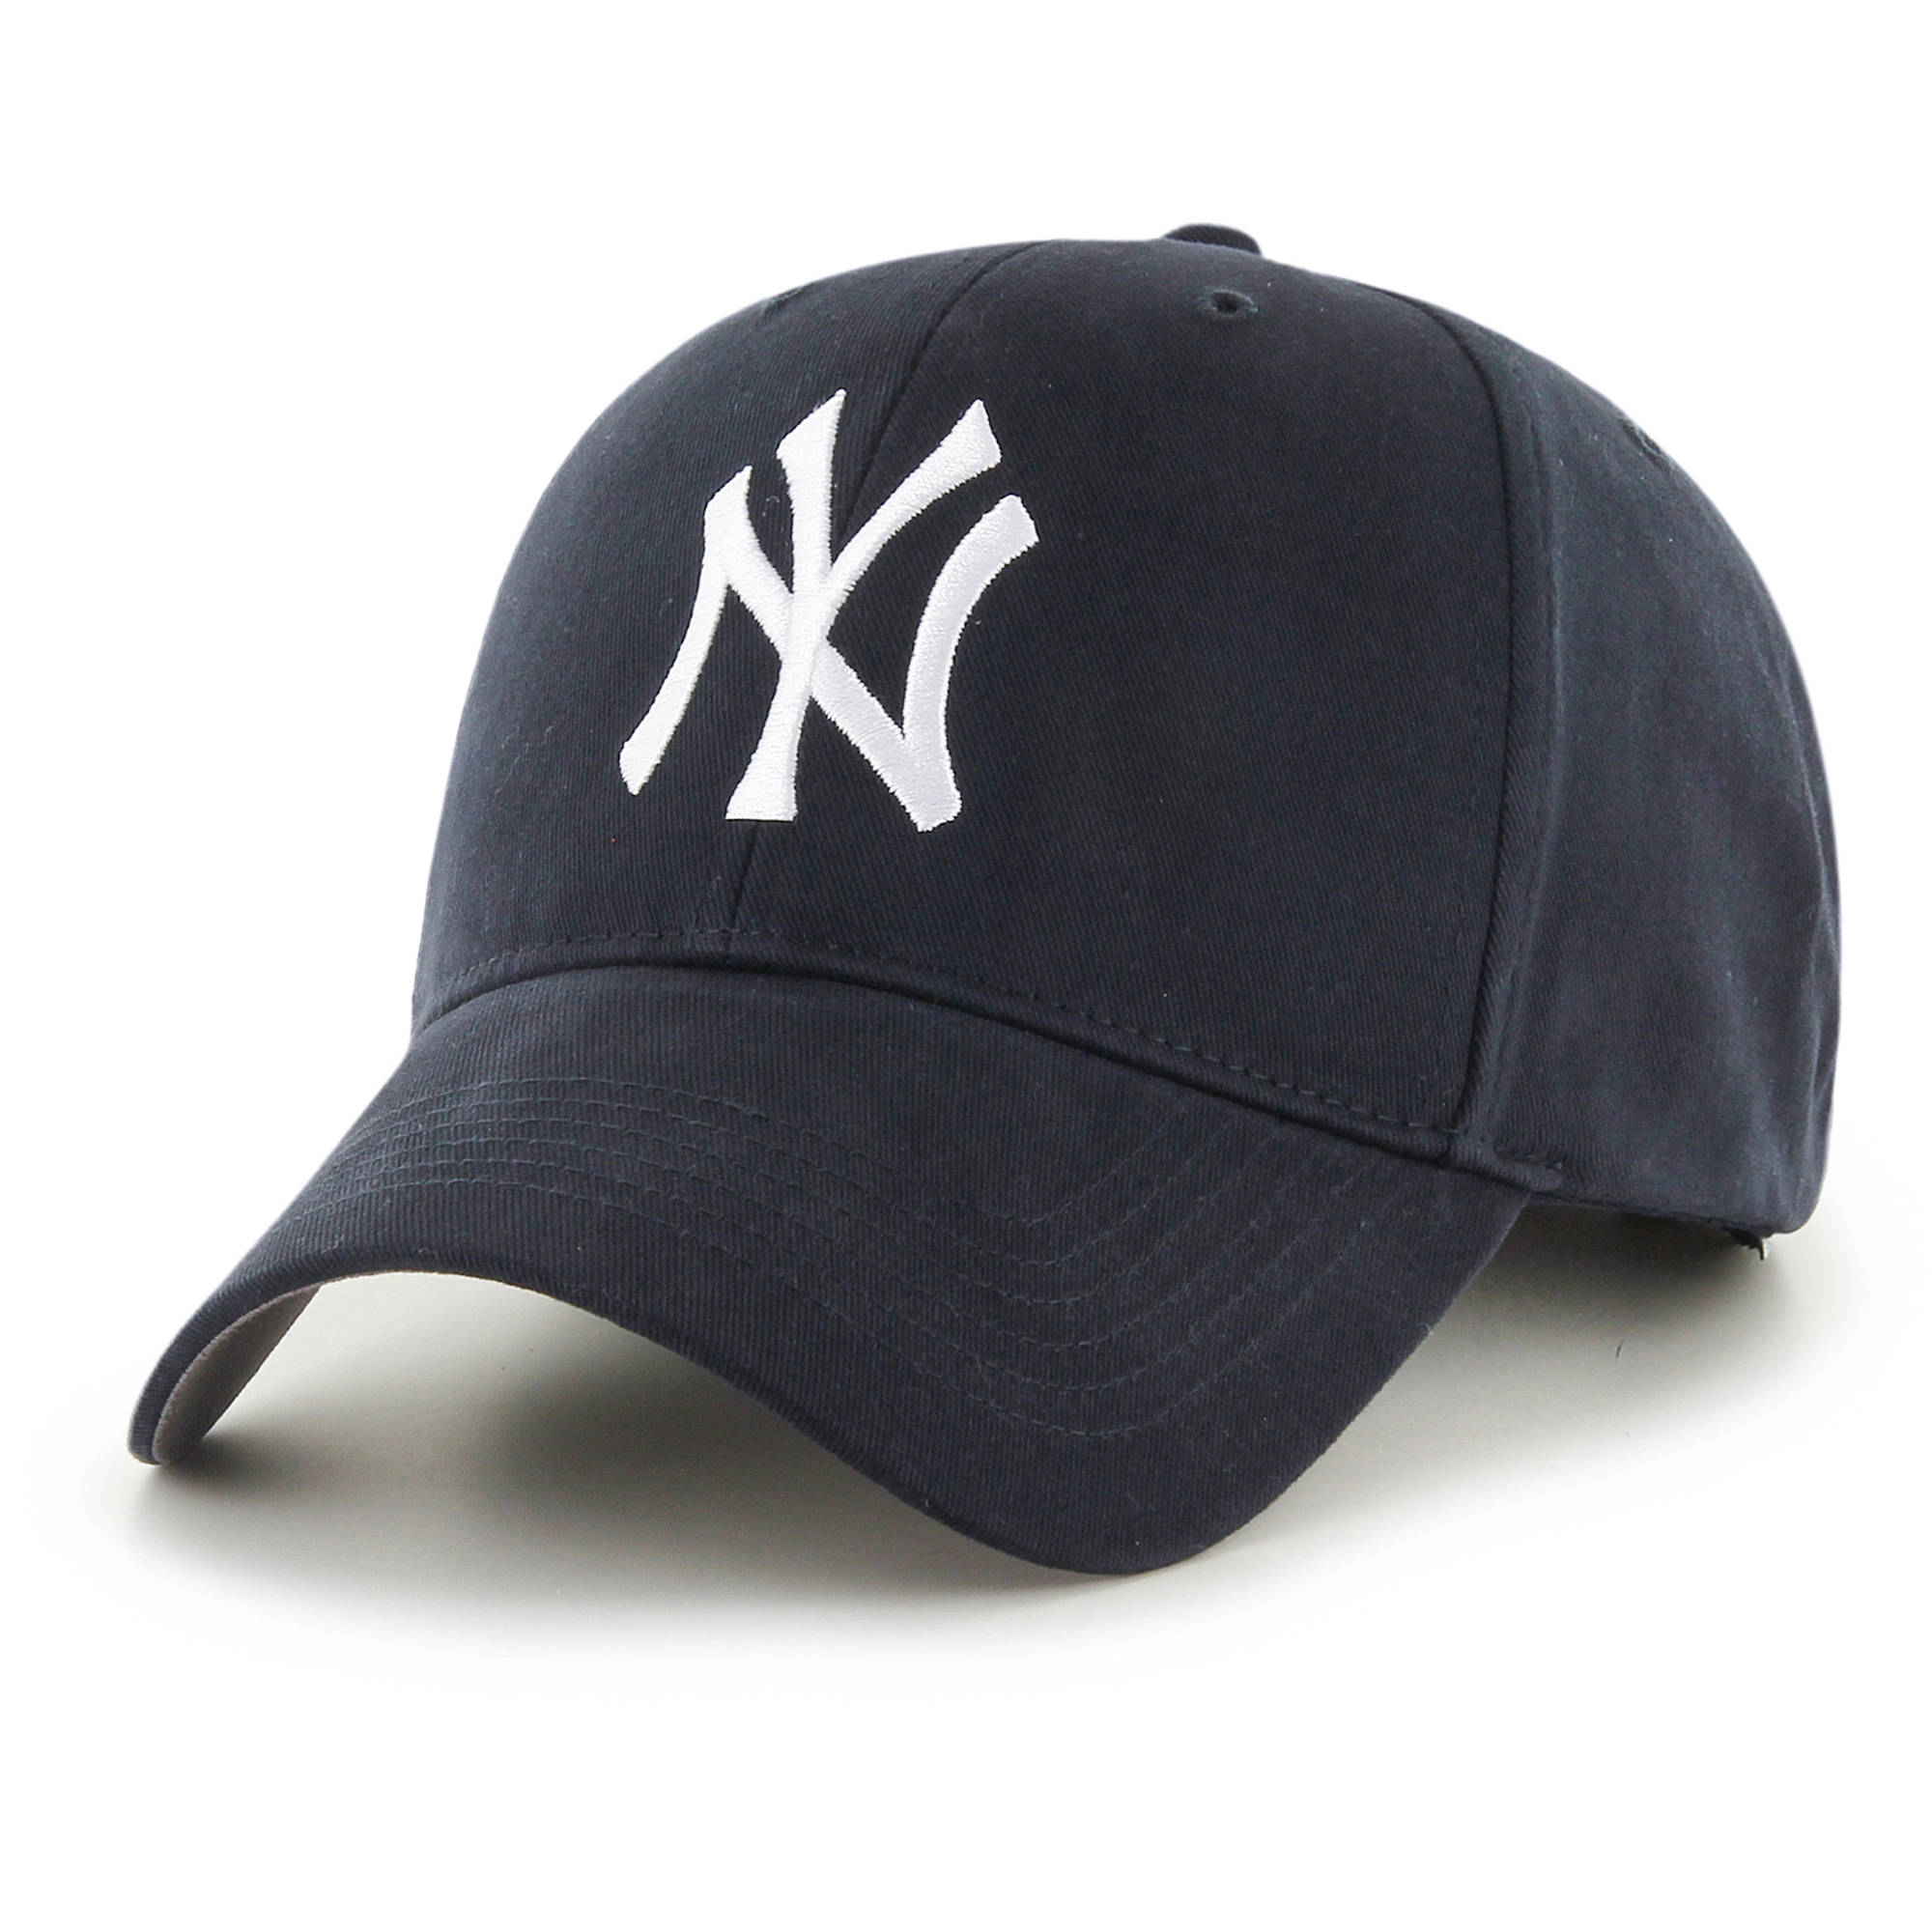 MLB New York Yankees Basic Cap / Hat by Fan Favorite